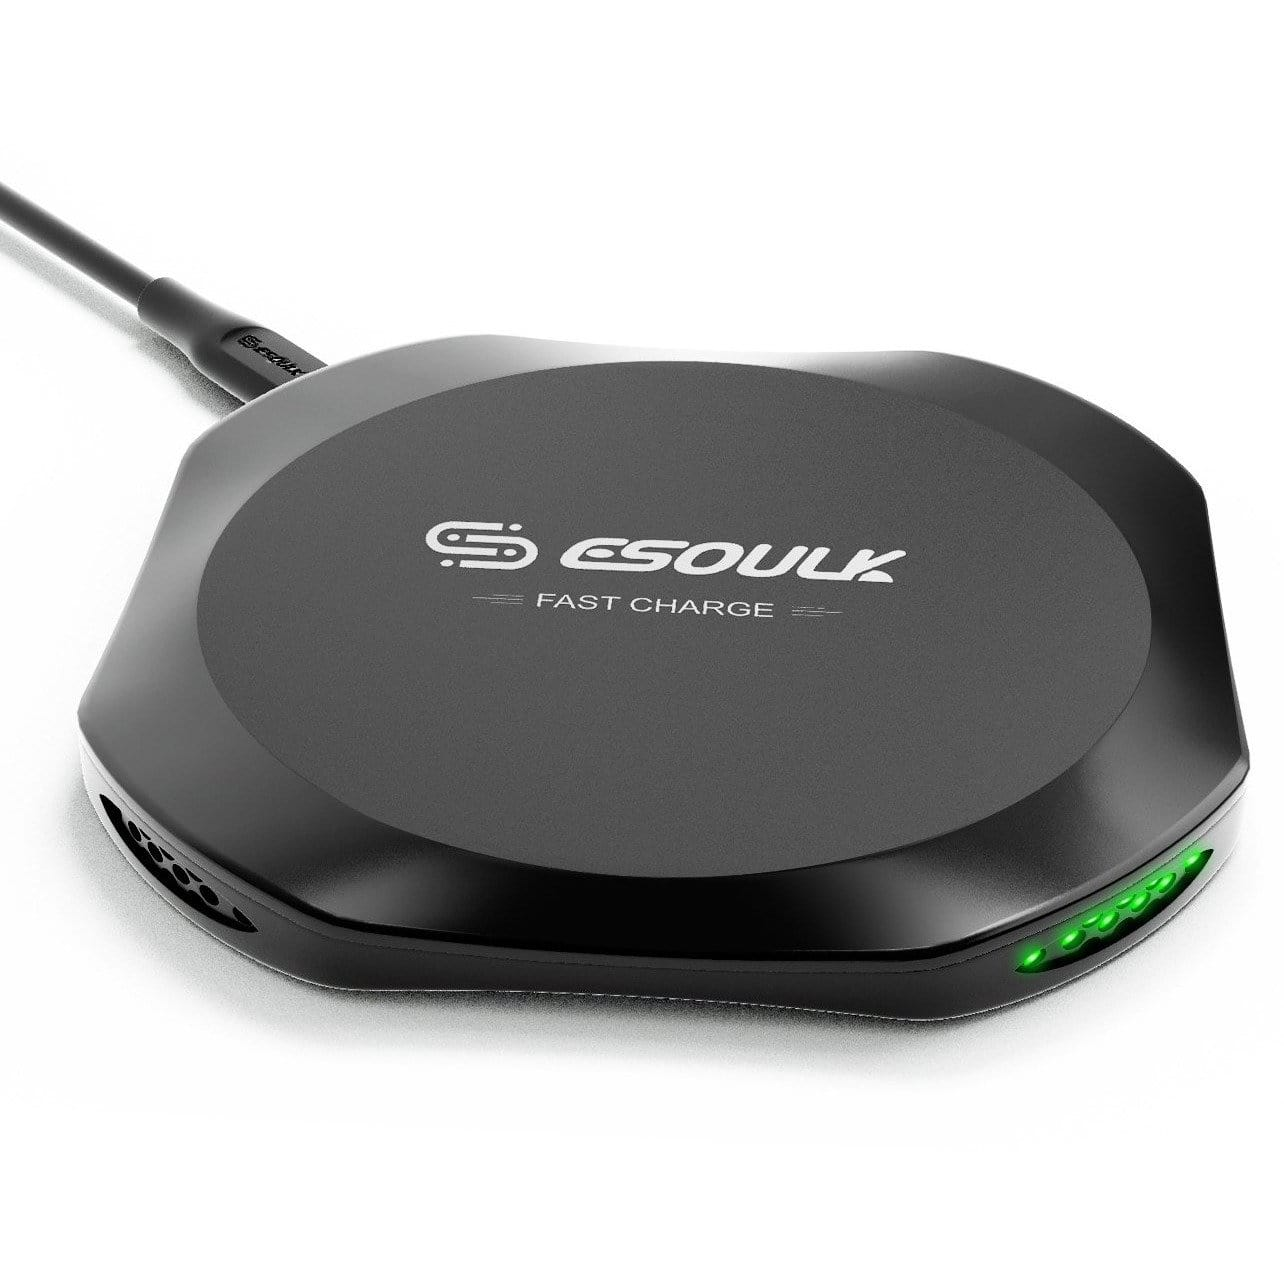 Esoulk Wireless Charger Black 10W